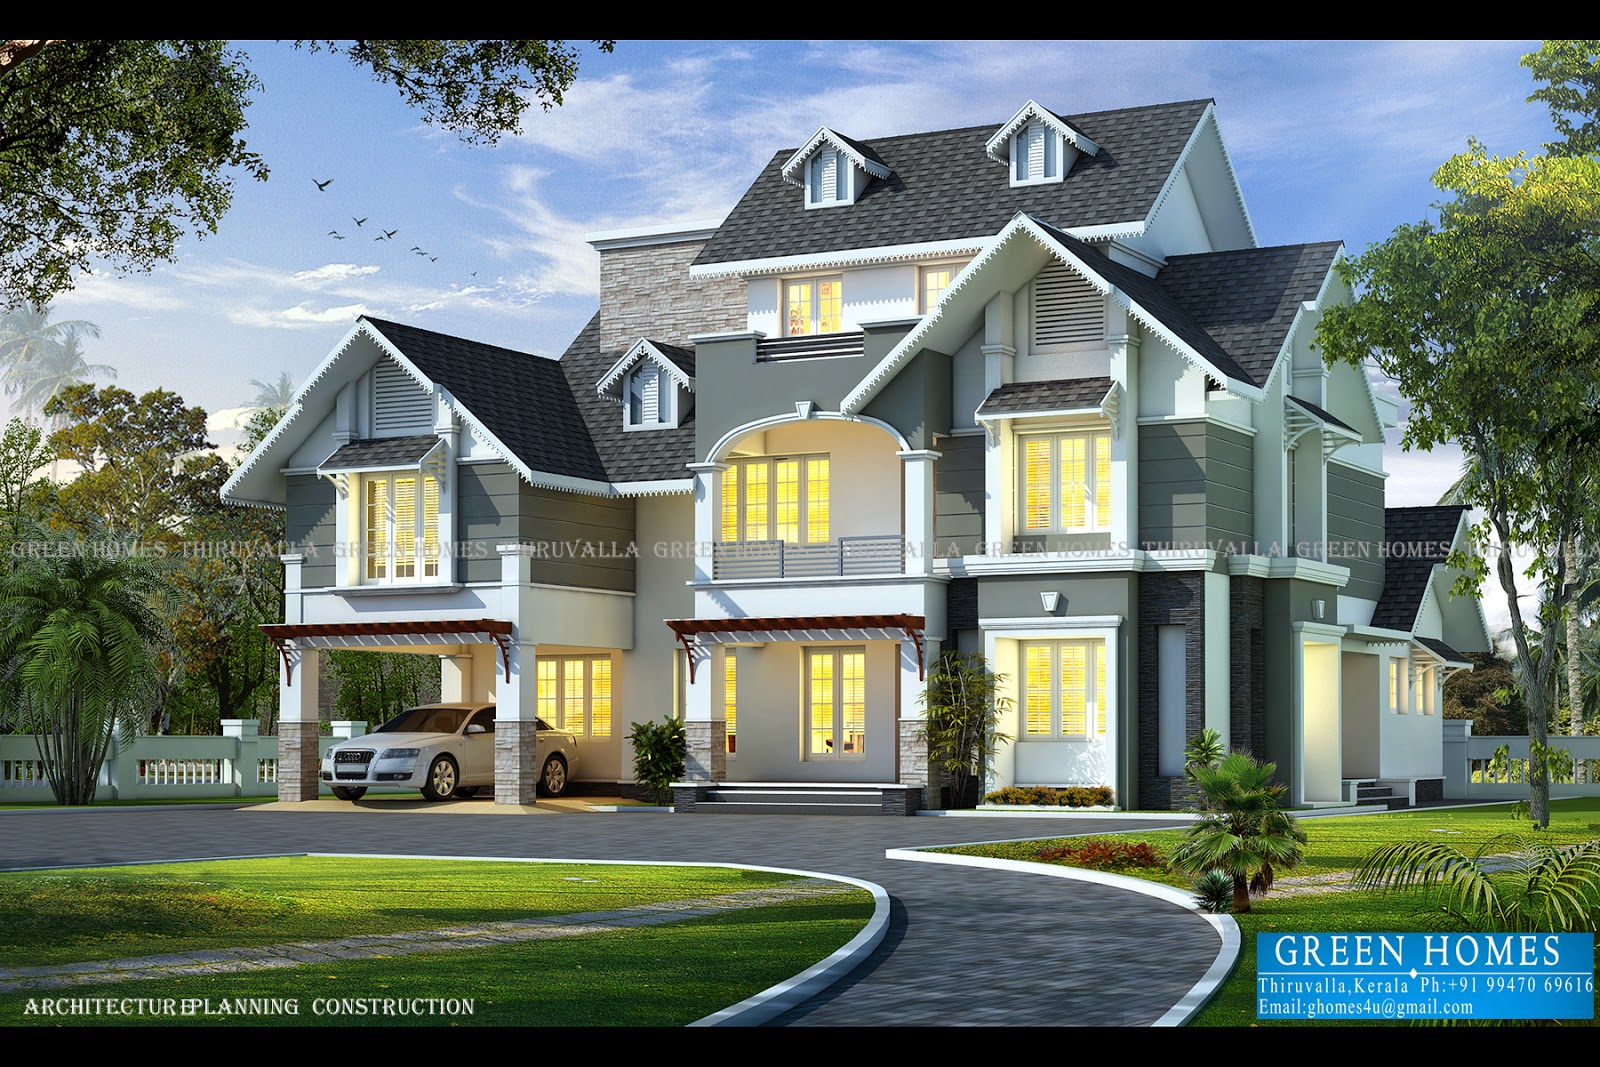 Green homes awesome european style house in 3650 sq feet for European style home builders